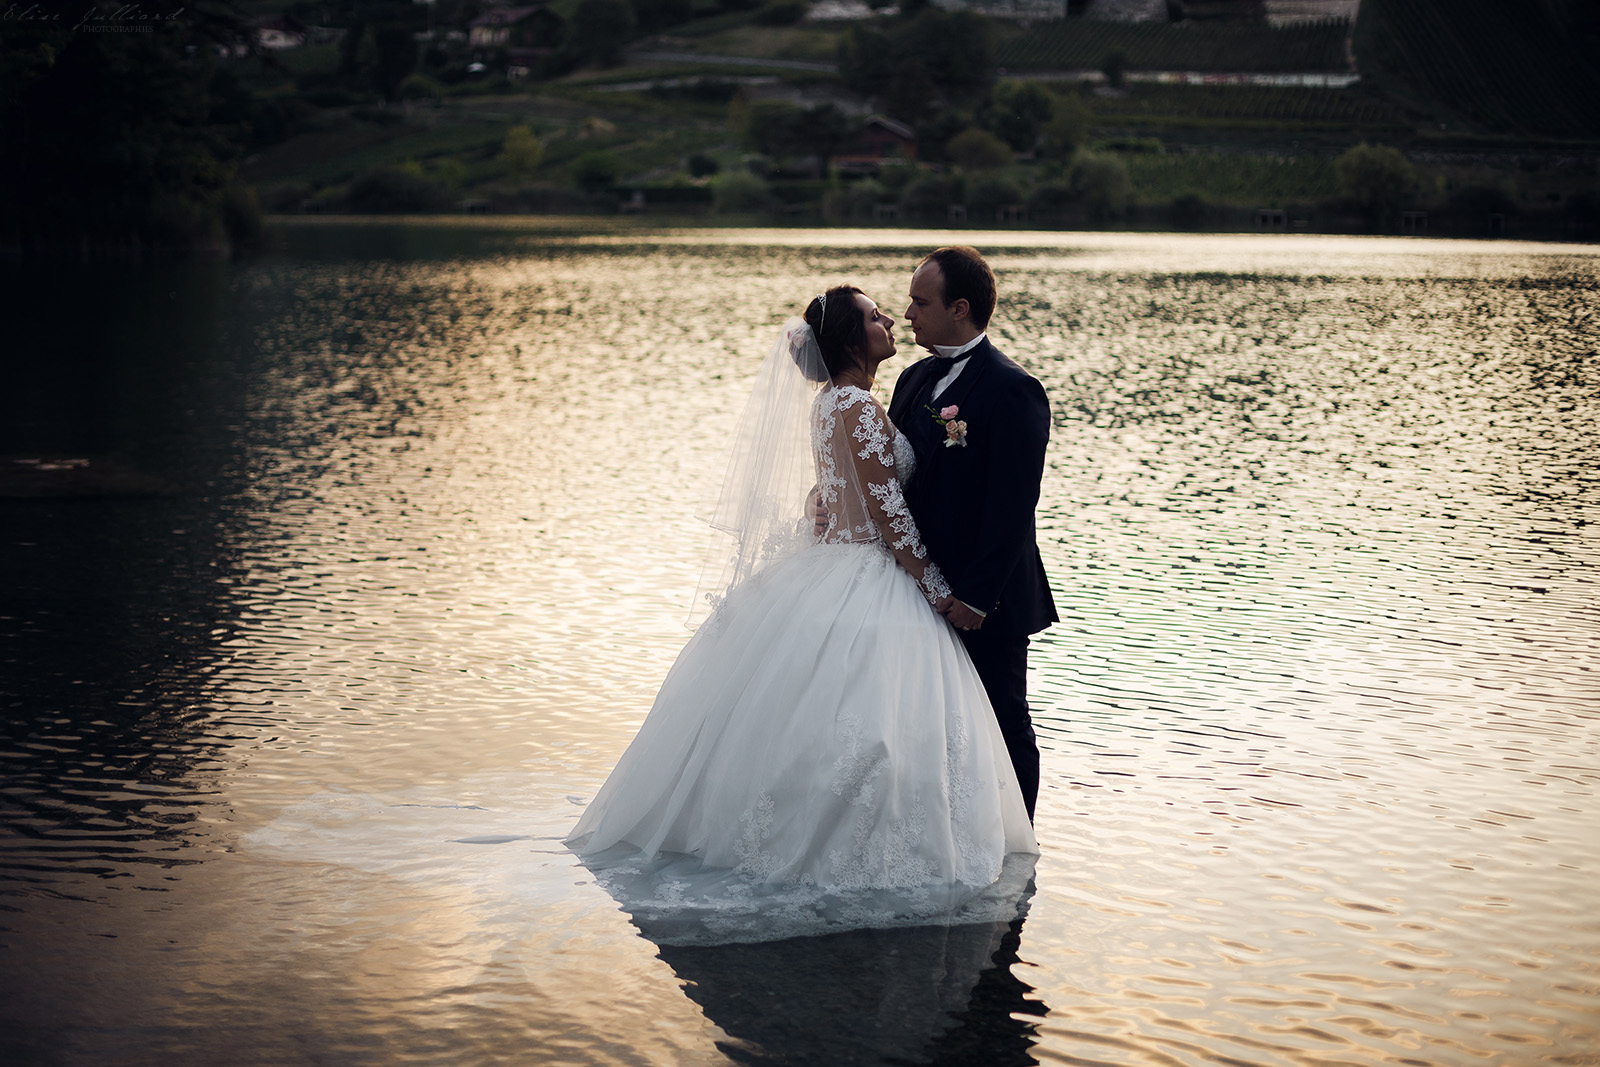 mariage-photographe-elise-julliard-wedding-love-session-lac-saint-andre-auvergne-rhone-alpes-lyon-chambery-seance-photo-couple-trash-the-dress-12